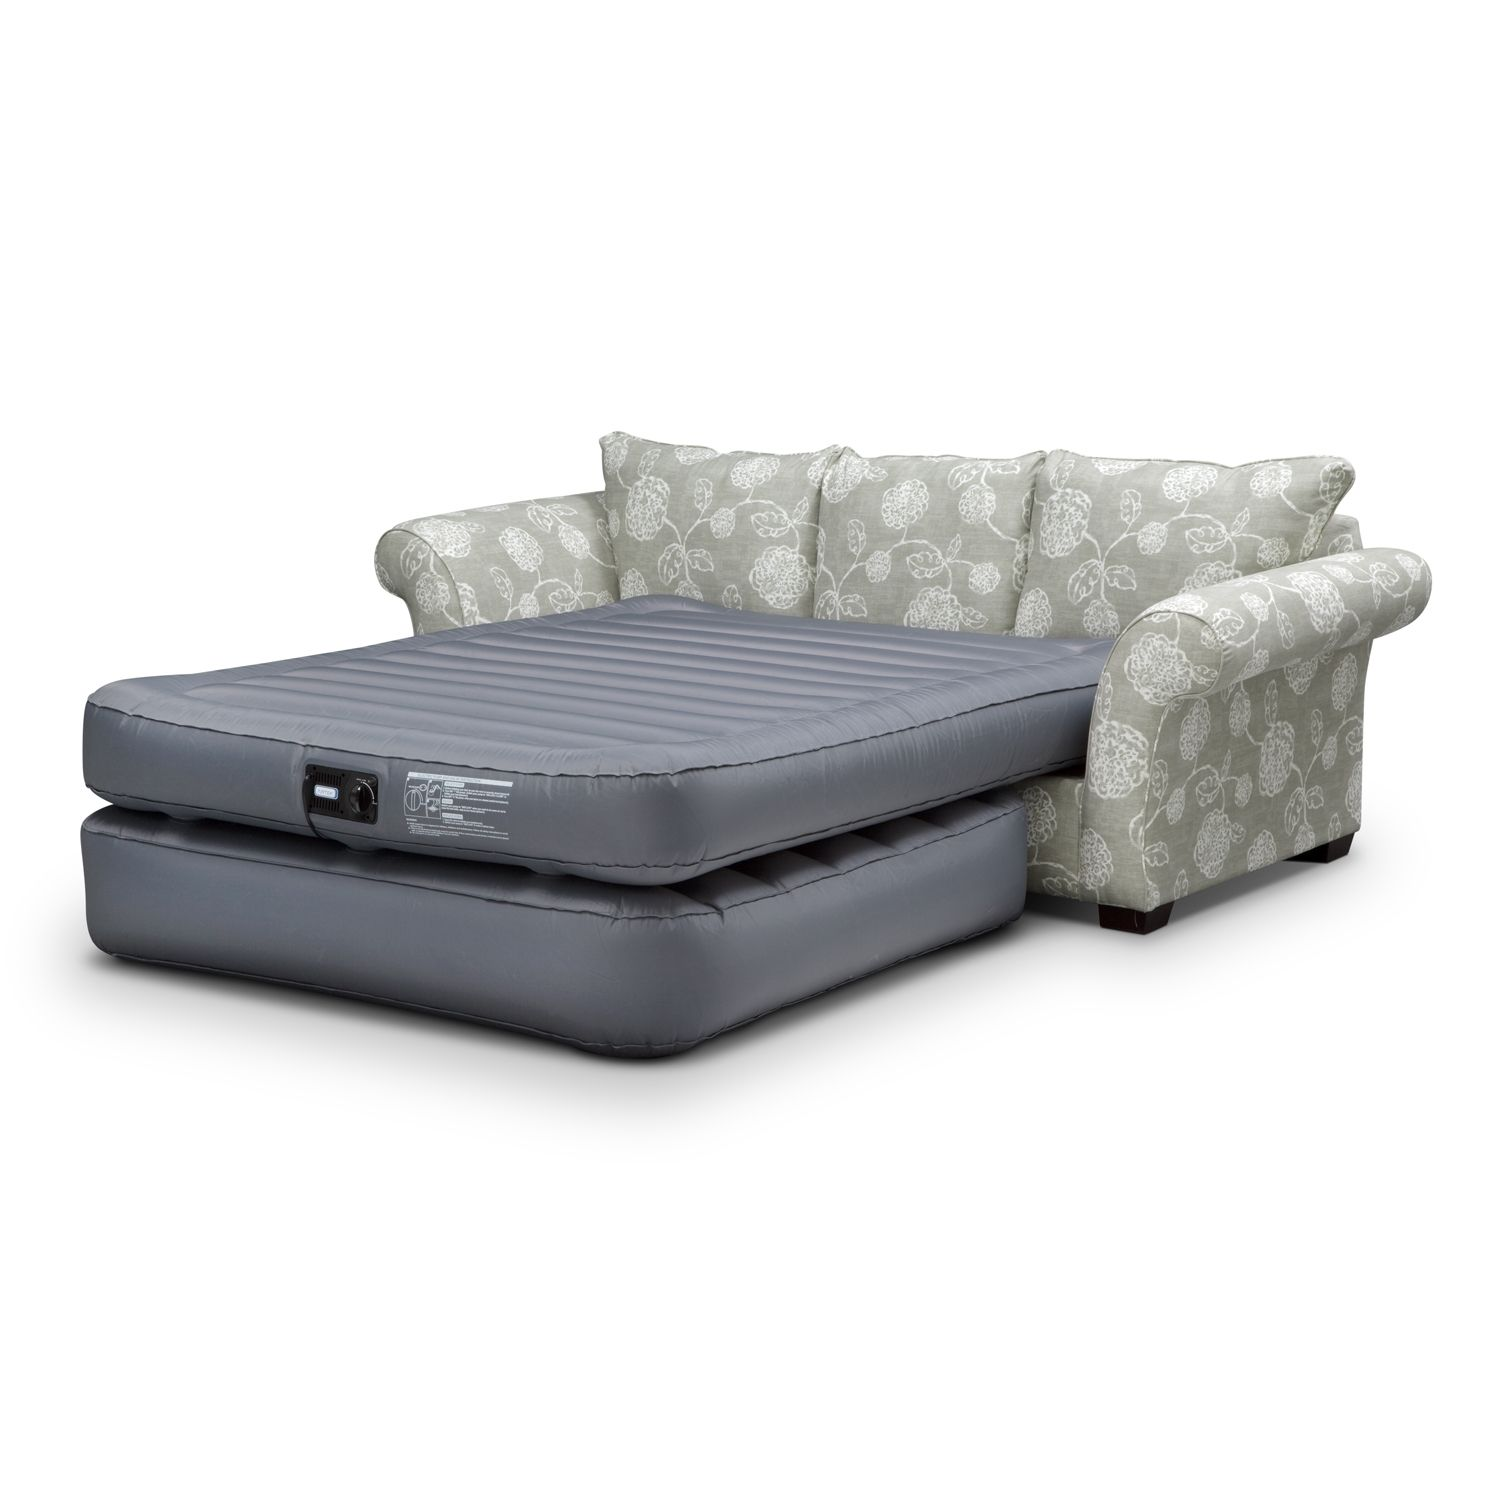 Mattresses And Bedding Airest Air Sofa Bed Living Room